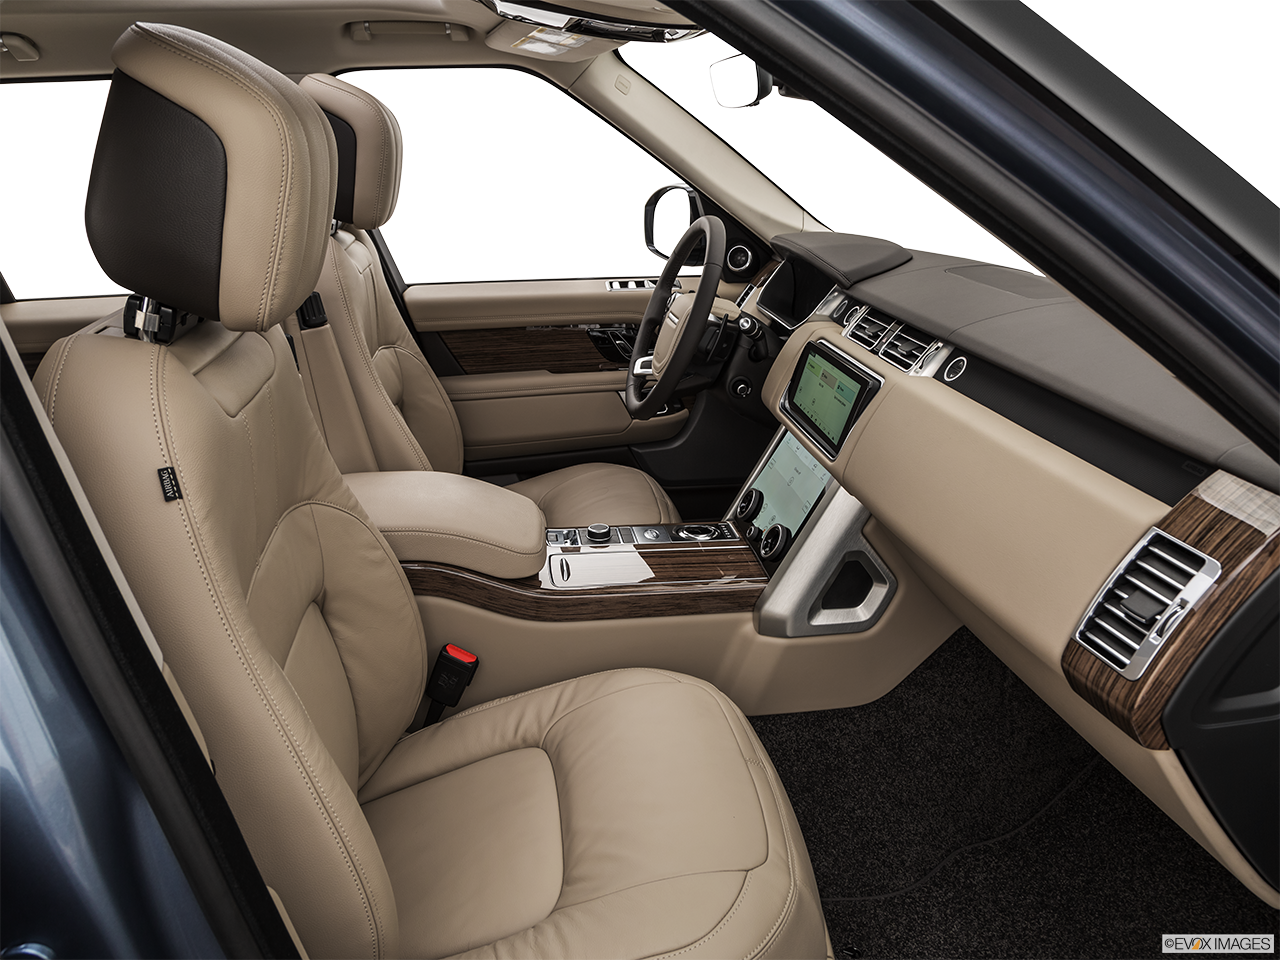 Interior view of the Land Rover Range Rover PHEV